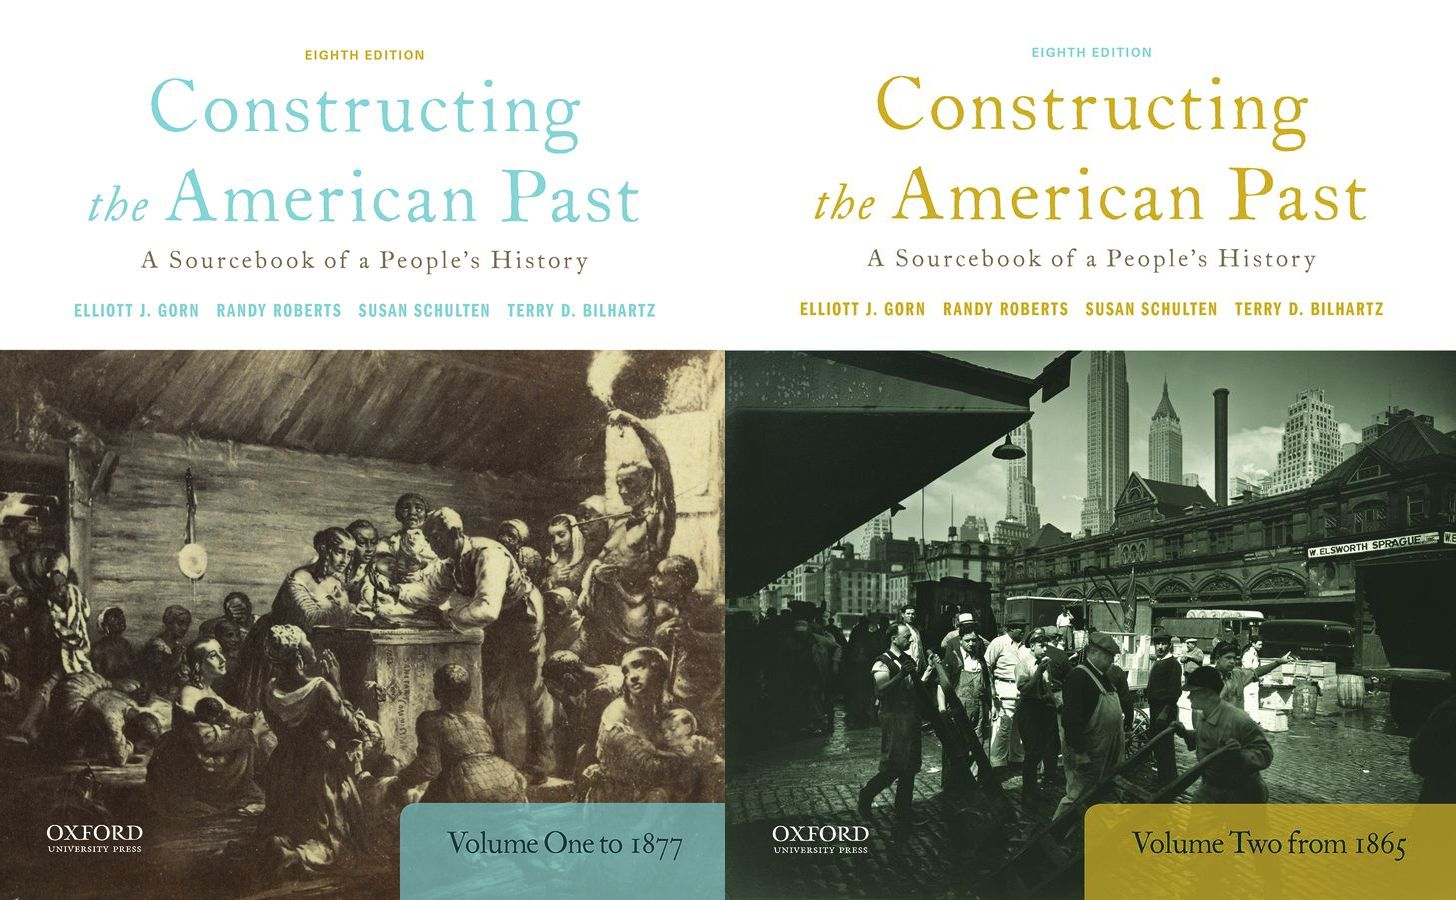 Constructing the American Past: A Sourcebook of a People's History 8e